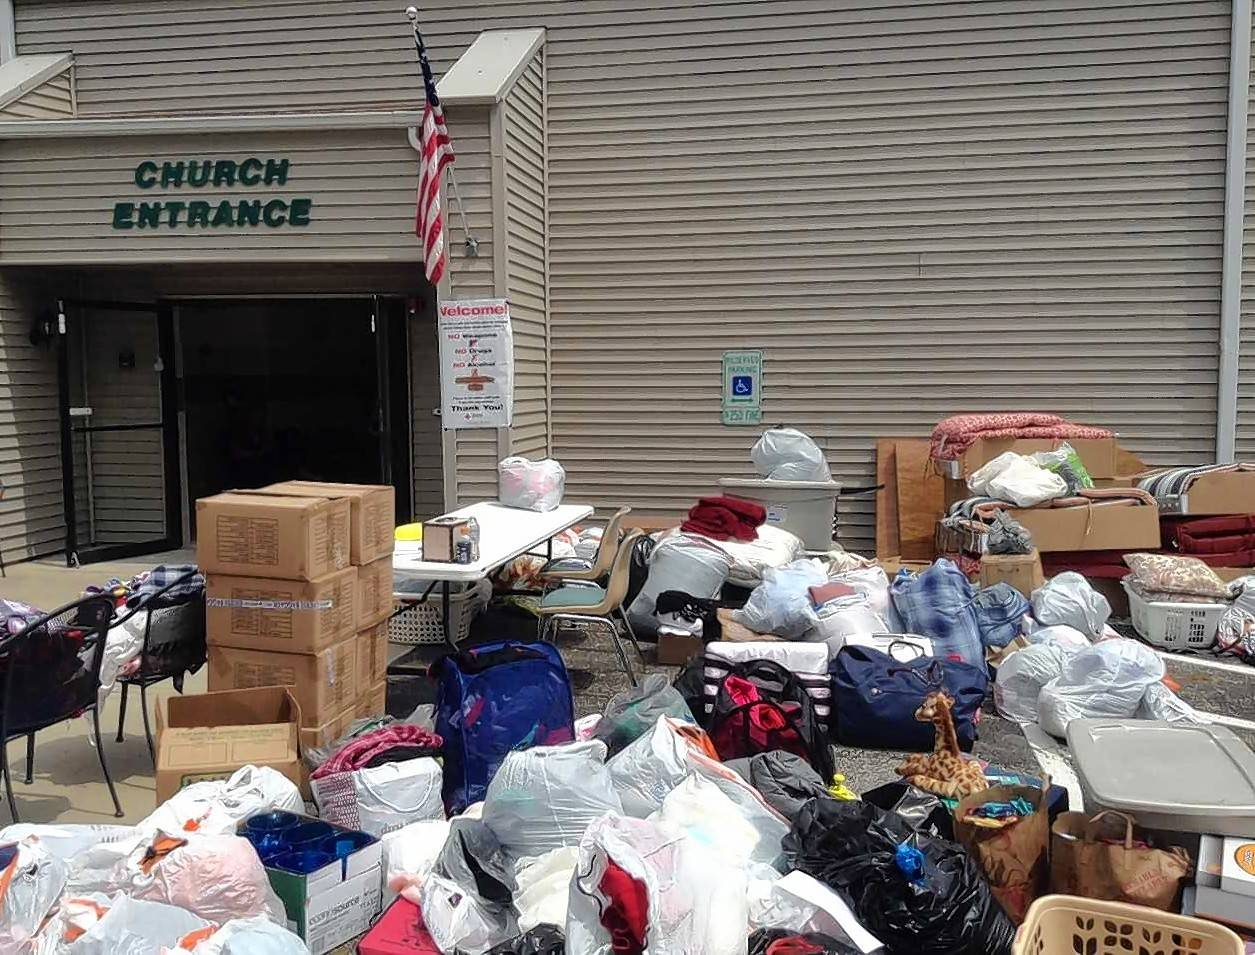 Donated items, which were being left at Lakewood Chapel in Arlington Heights the day after a major fire at the River Trail Condominiums in Prospect Heights last month, will be given away at the chapel from 10 a.m. to 8 p.m. Thursday, Aug. 2 through Saturday, Aug. 4.